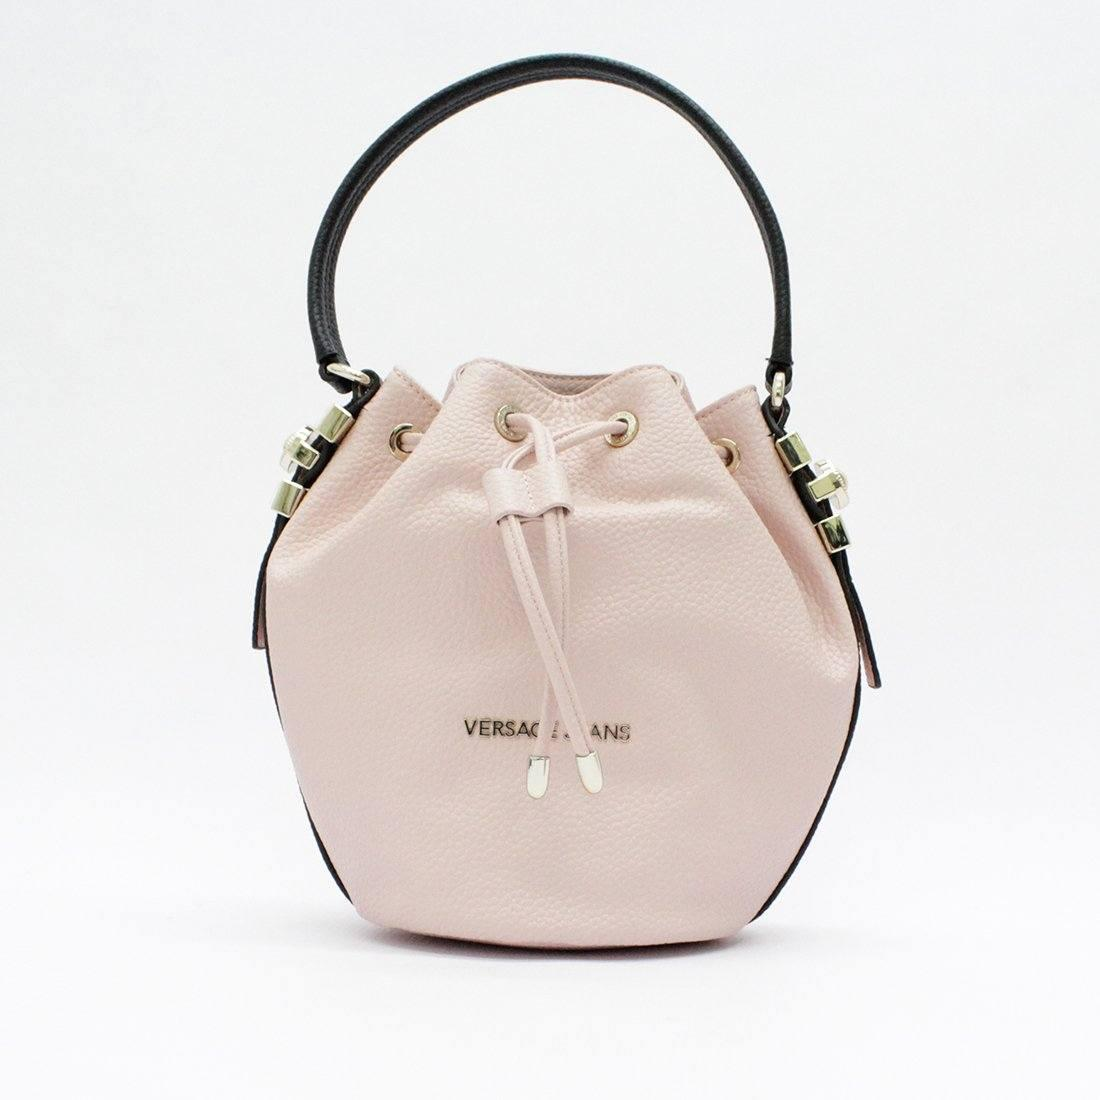 Lyst - Versace Jeans Stud Detail Pouch Pink in Pink 40ef3d5bcf6b8